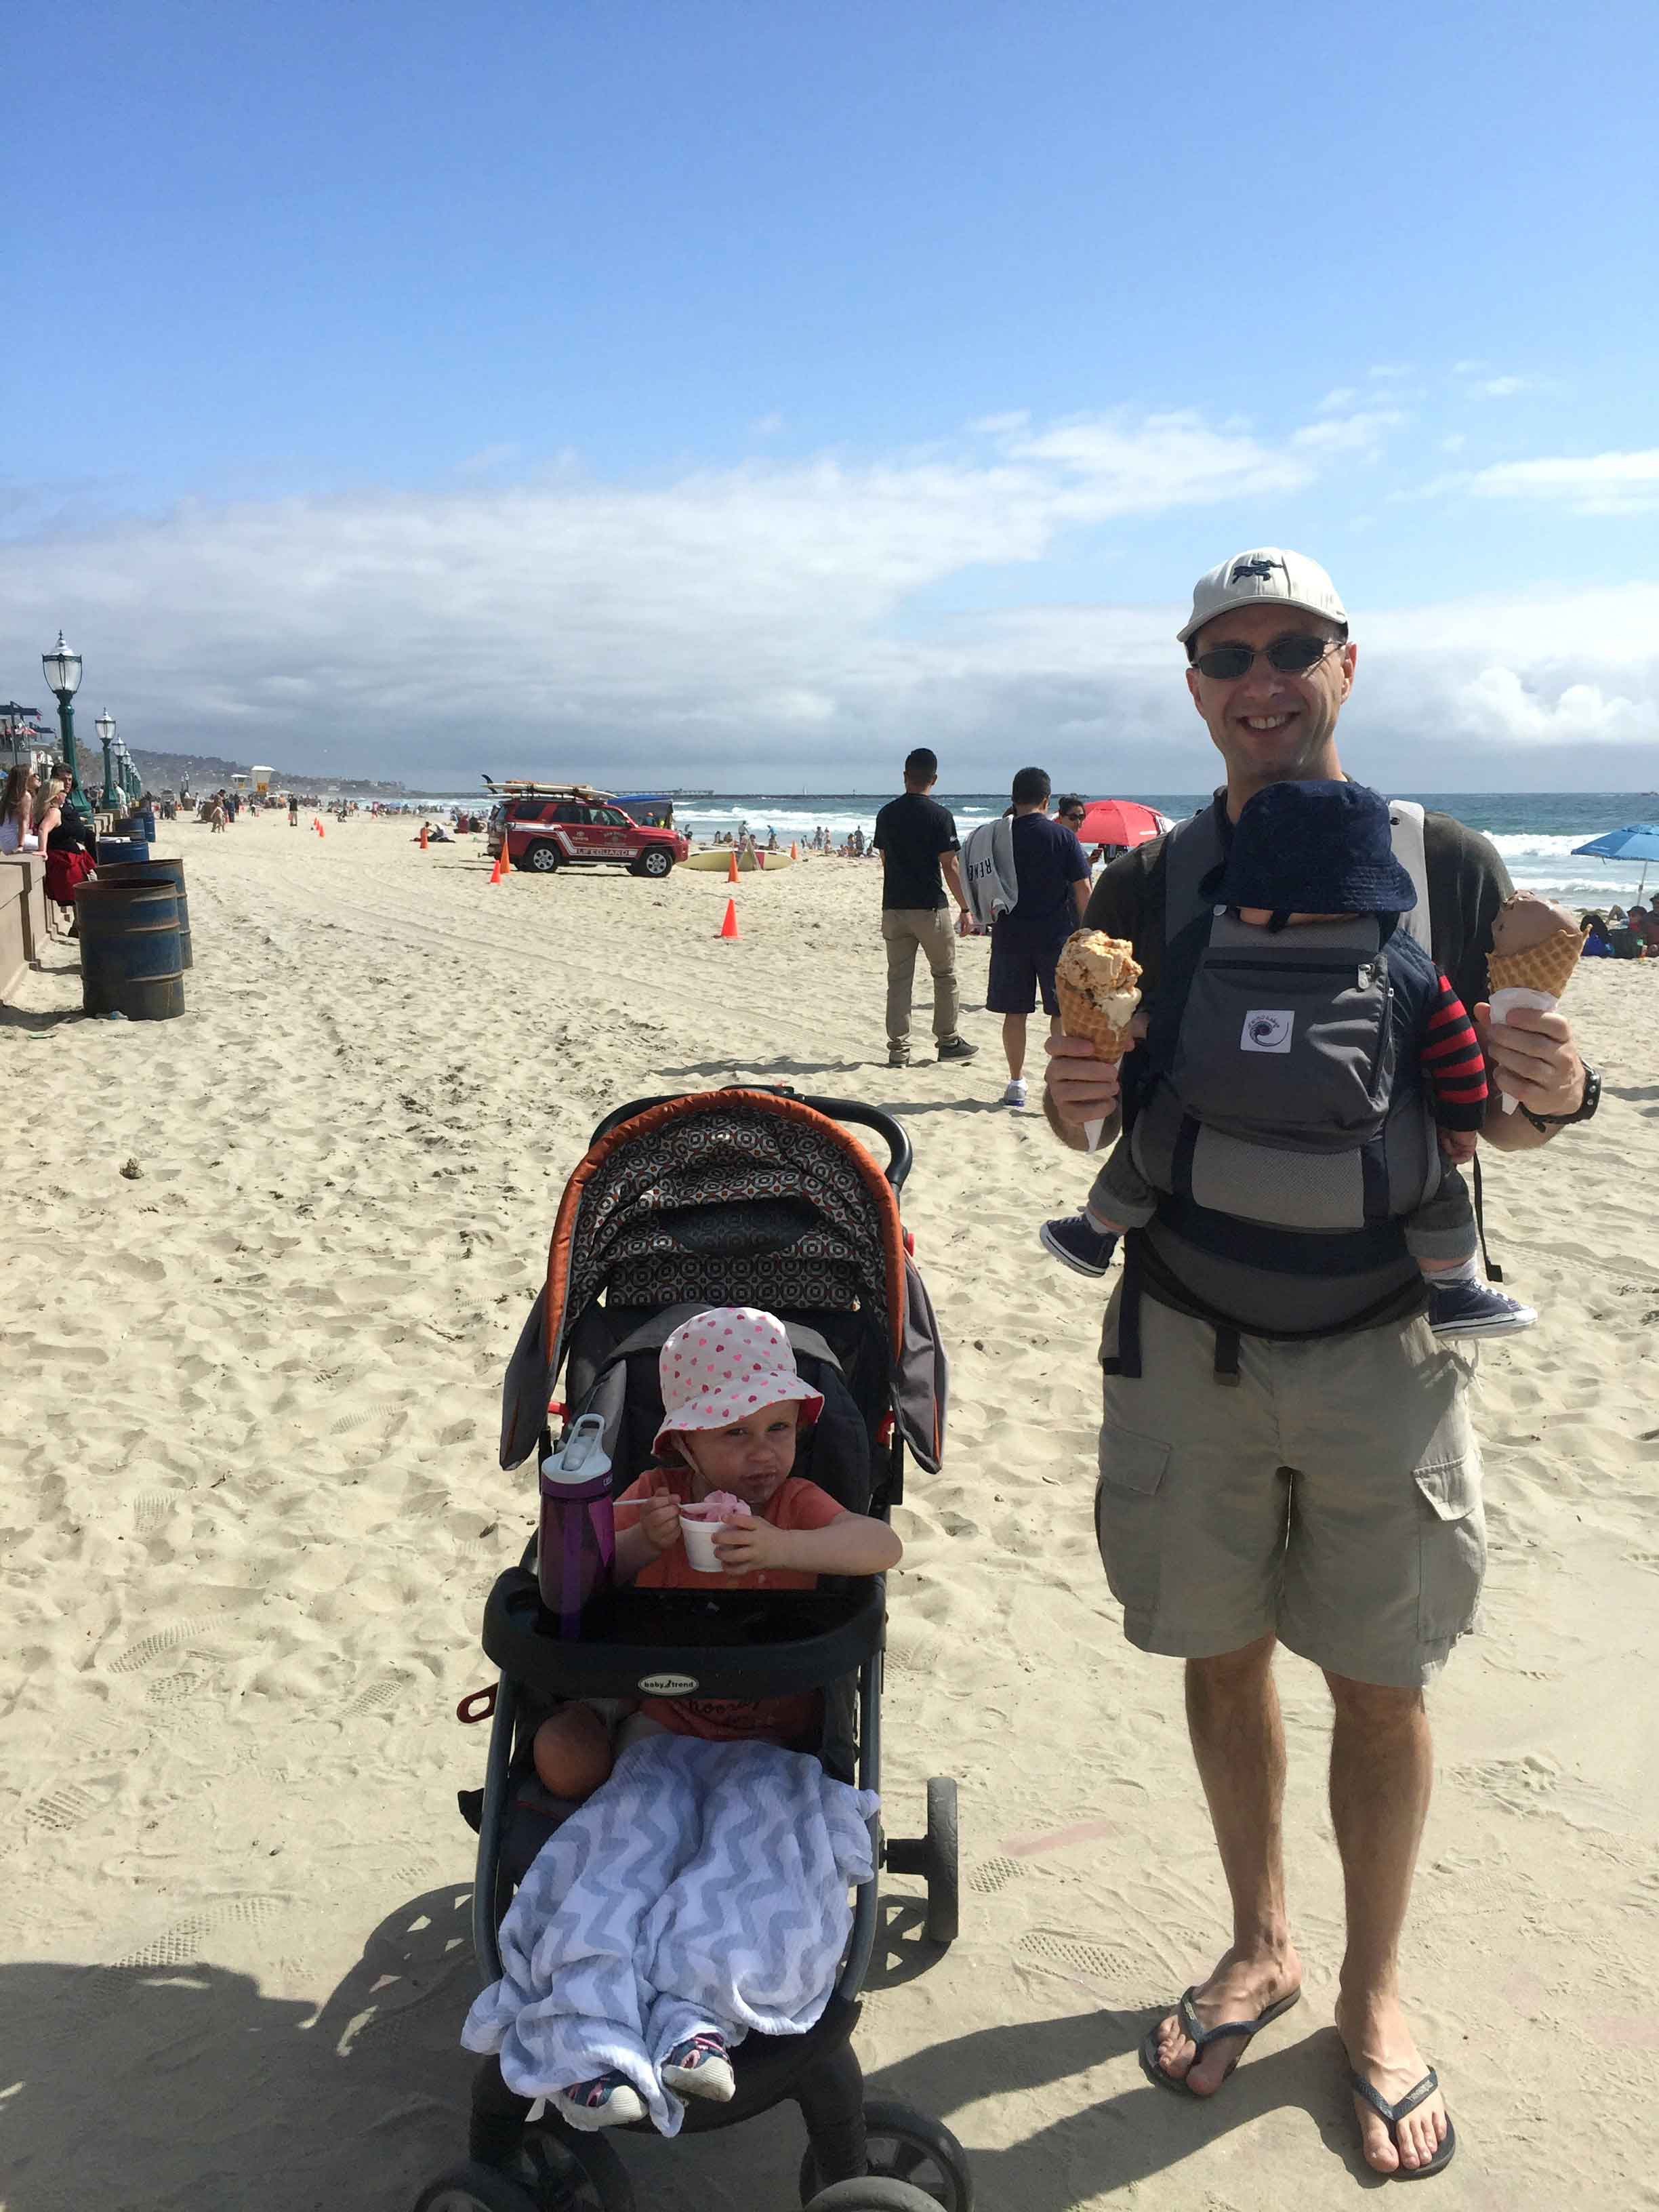 Baby-Can-Travel---San-Diego-Family-Friendly-Walks---Mission-Beach